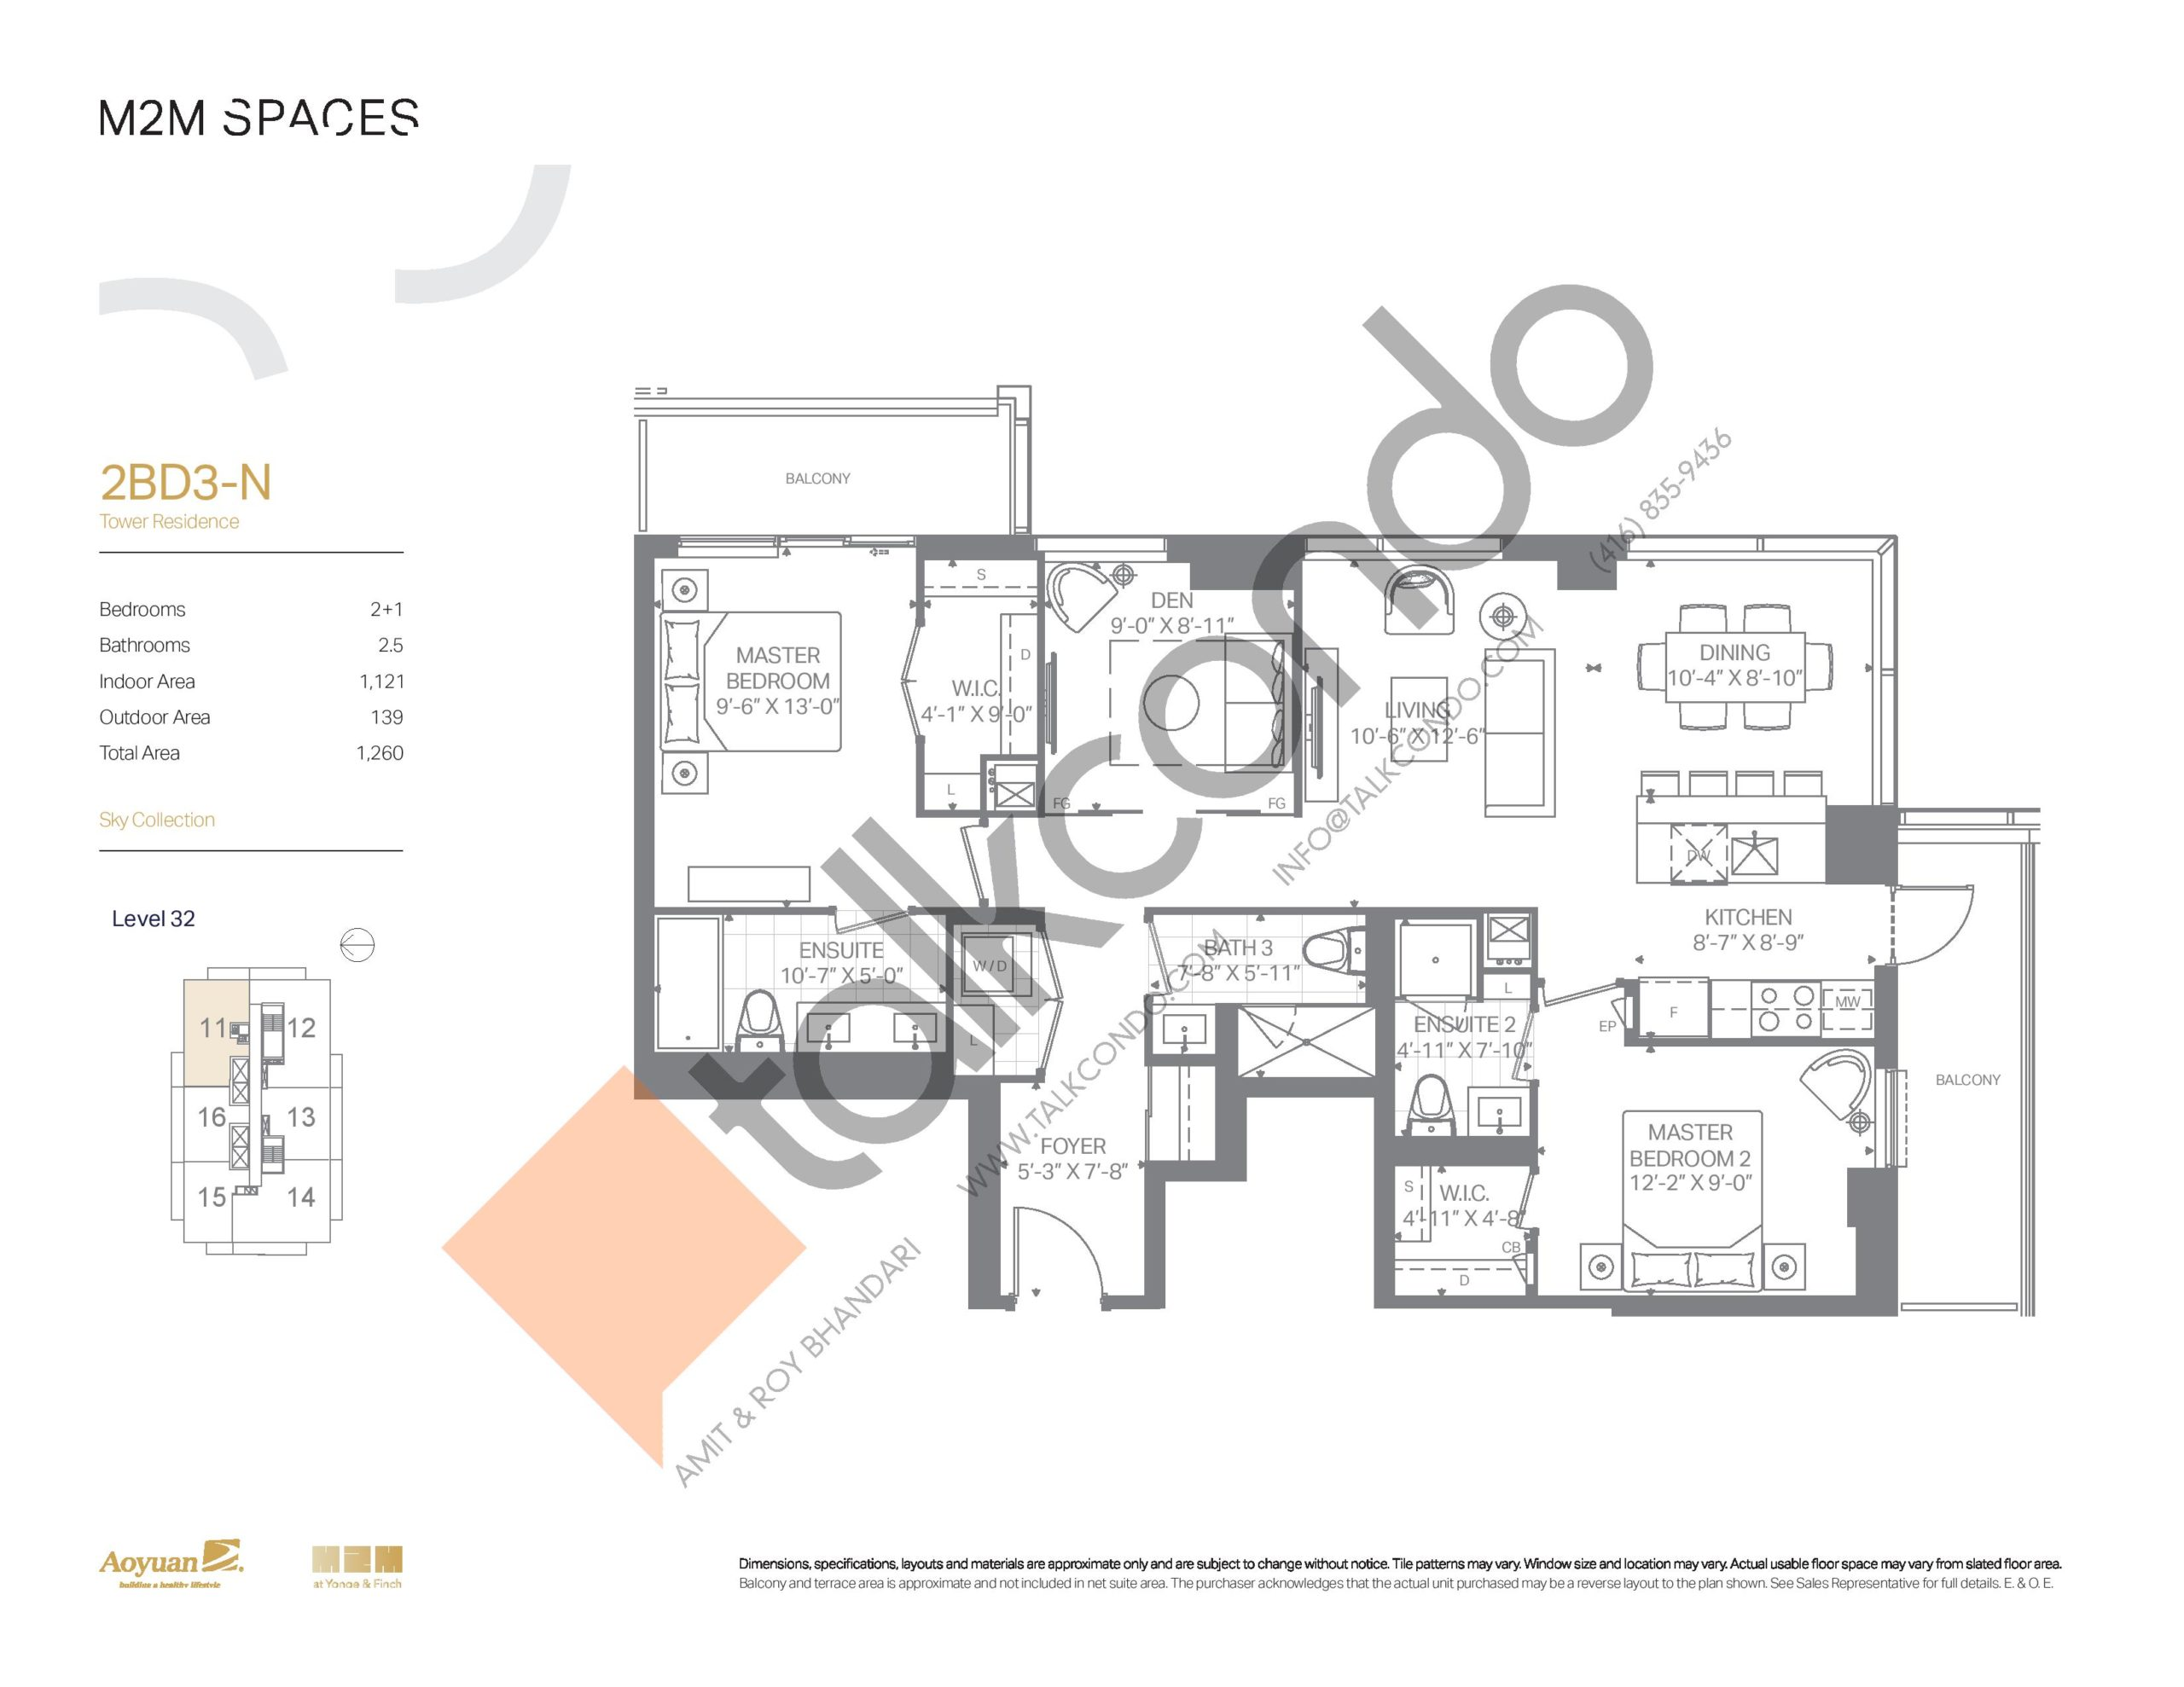 2BD3-N (Sky Collection) Floor Plan at M2M Spaces Condos - 1121 sq.ft